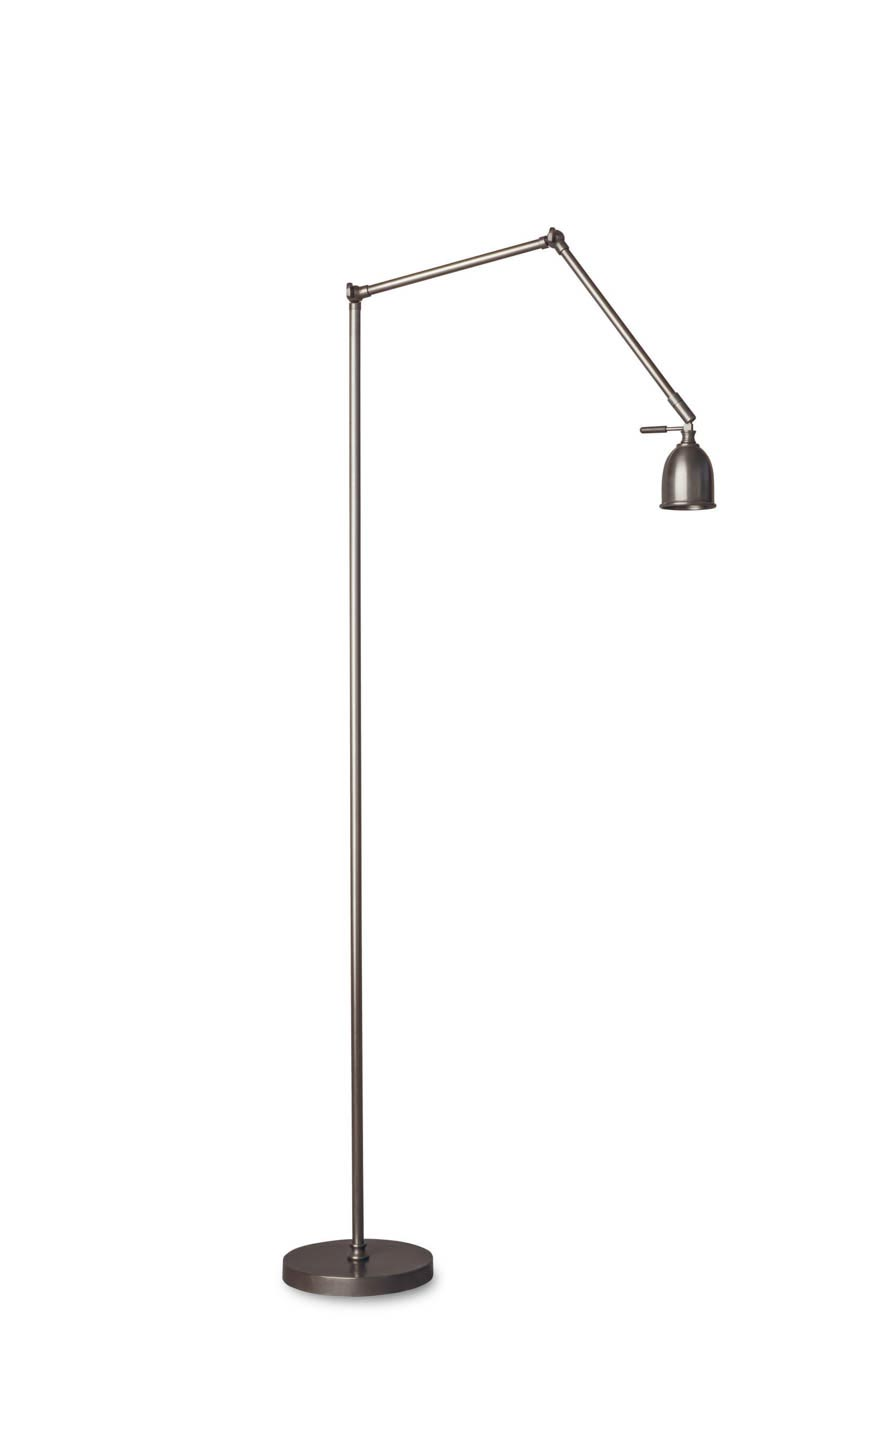 Articulated reading lamp patinated bronze finish LD71 LED lighting. Casadisagne.